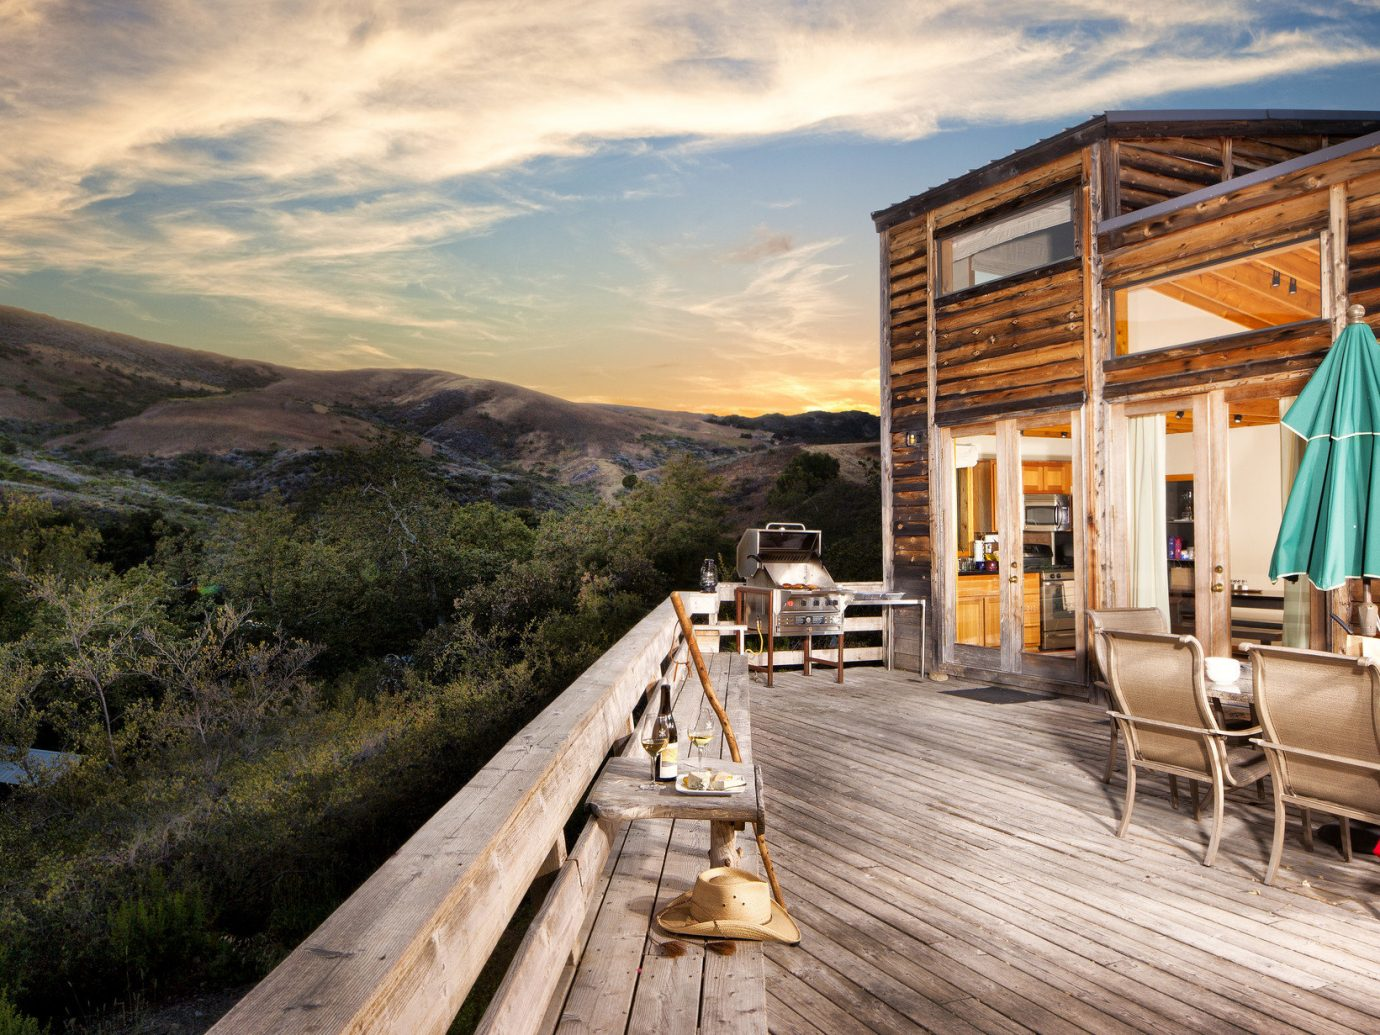 Boutique Hotels Fall Travel Hotels Outdoors + Adventure sky outdoor mountain Town vacation estate tourism wooden